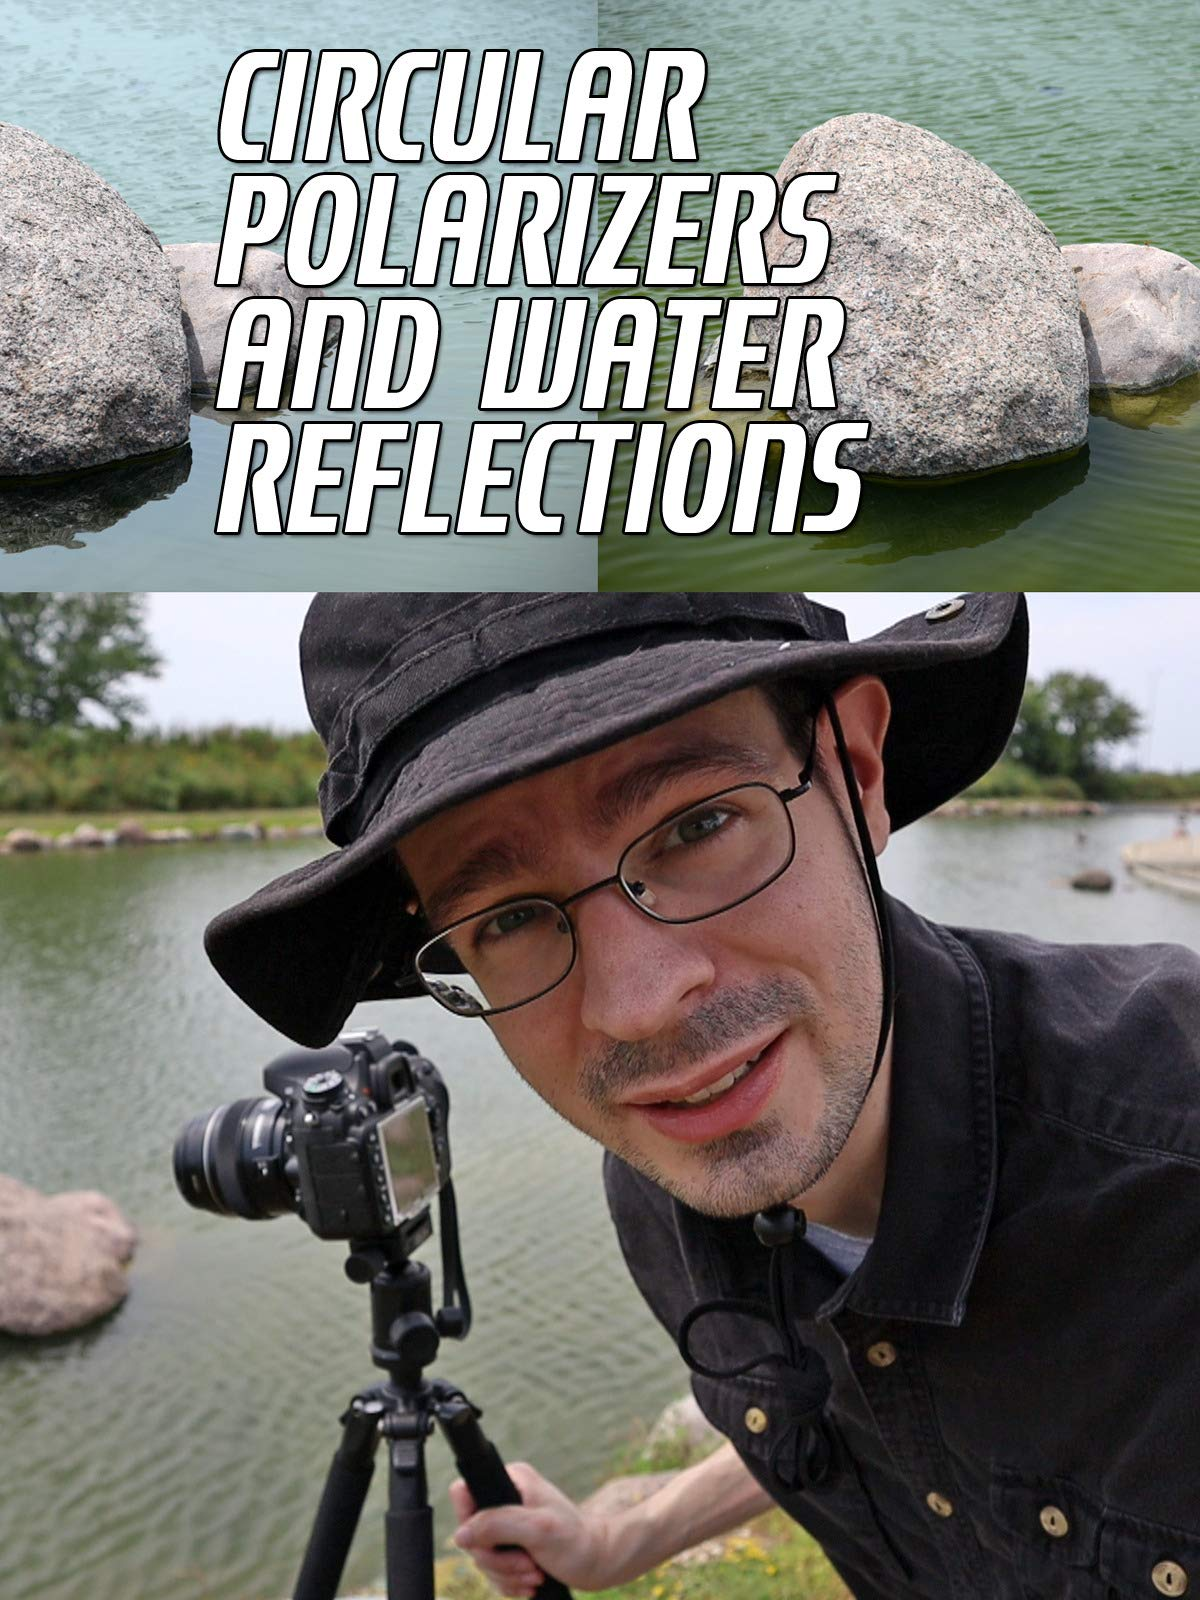 Circular Polarizers And Water Reflections